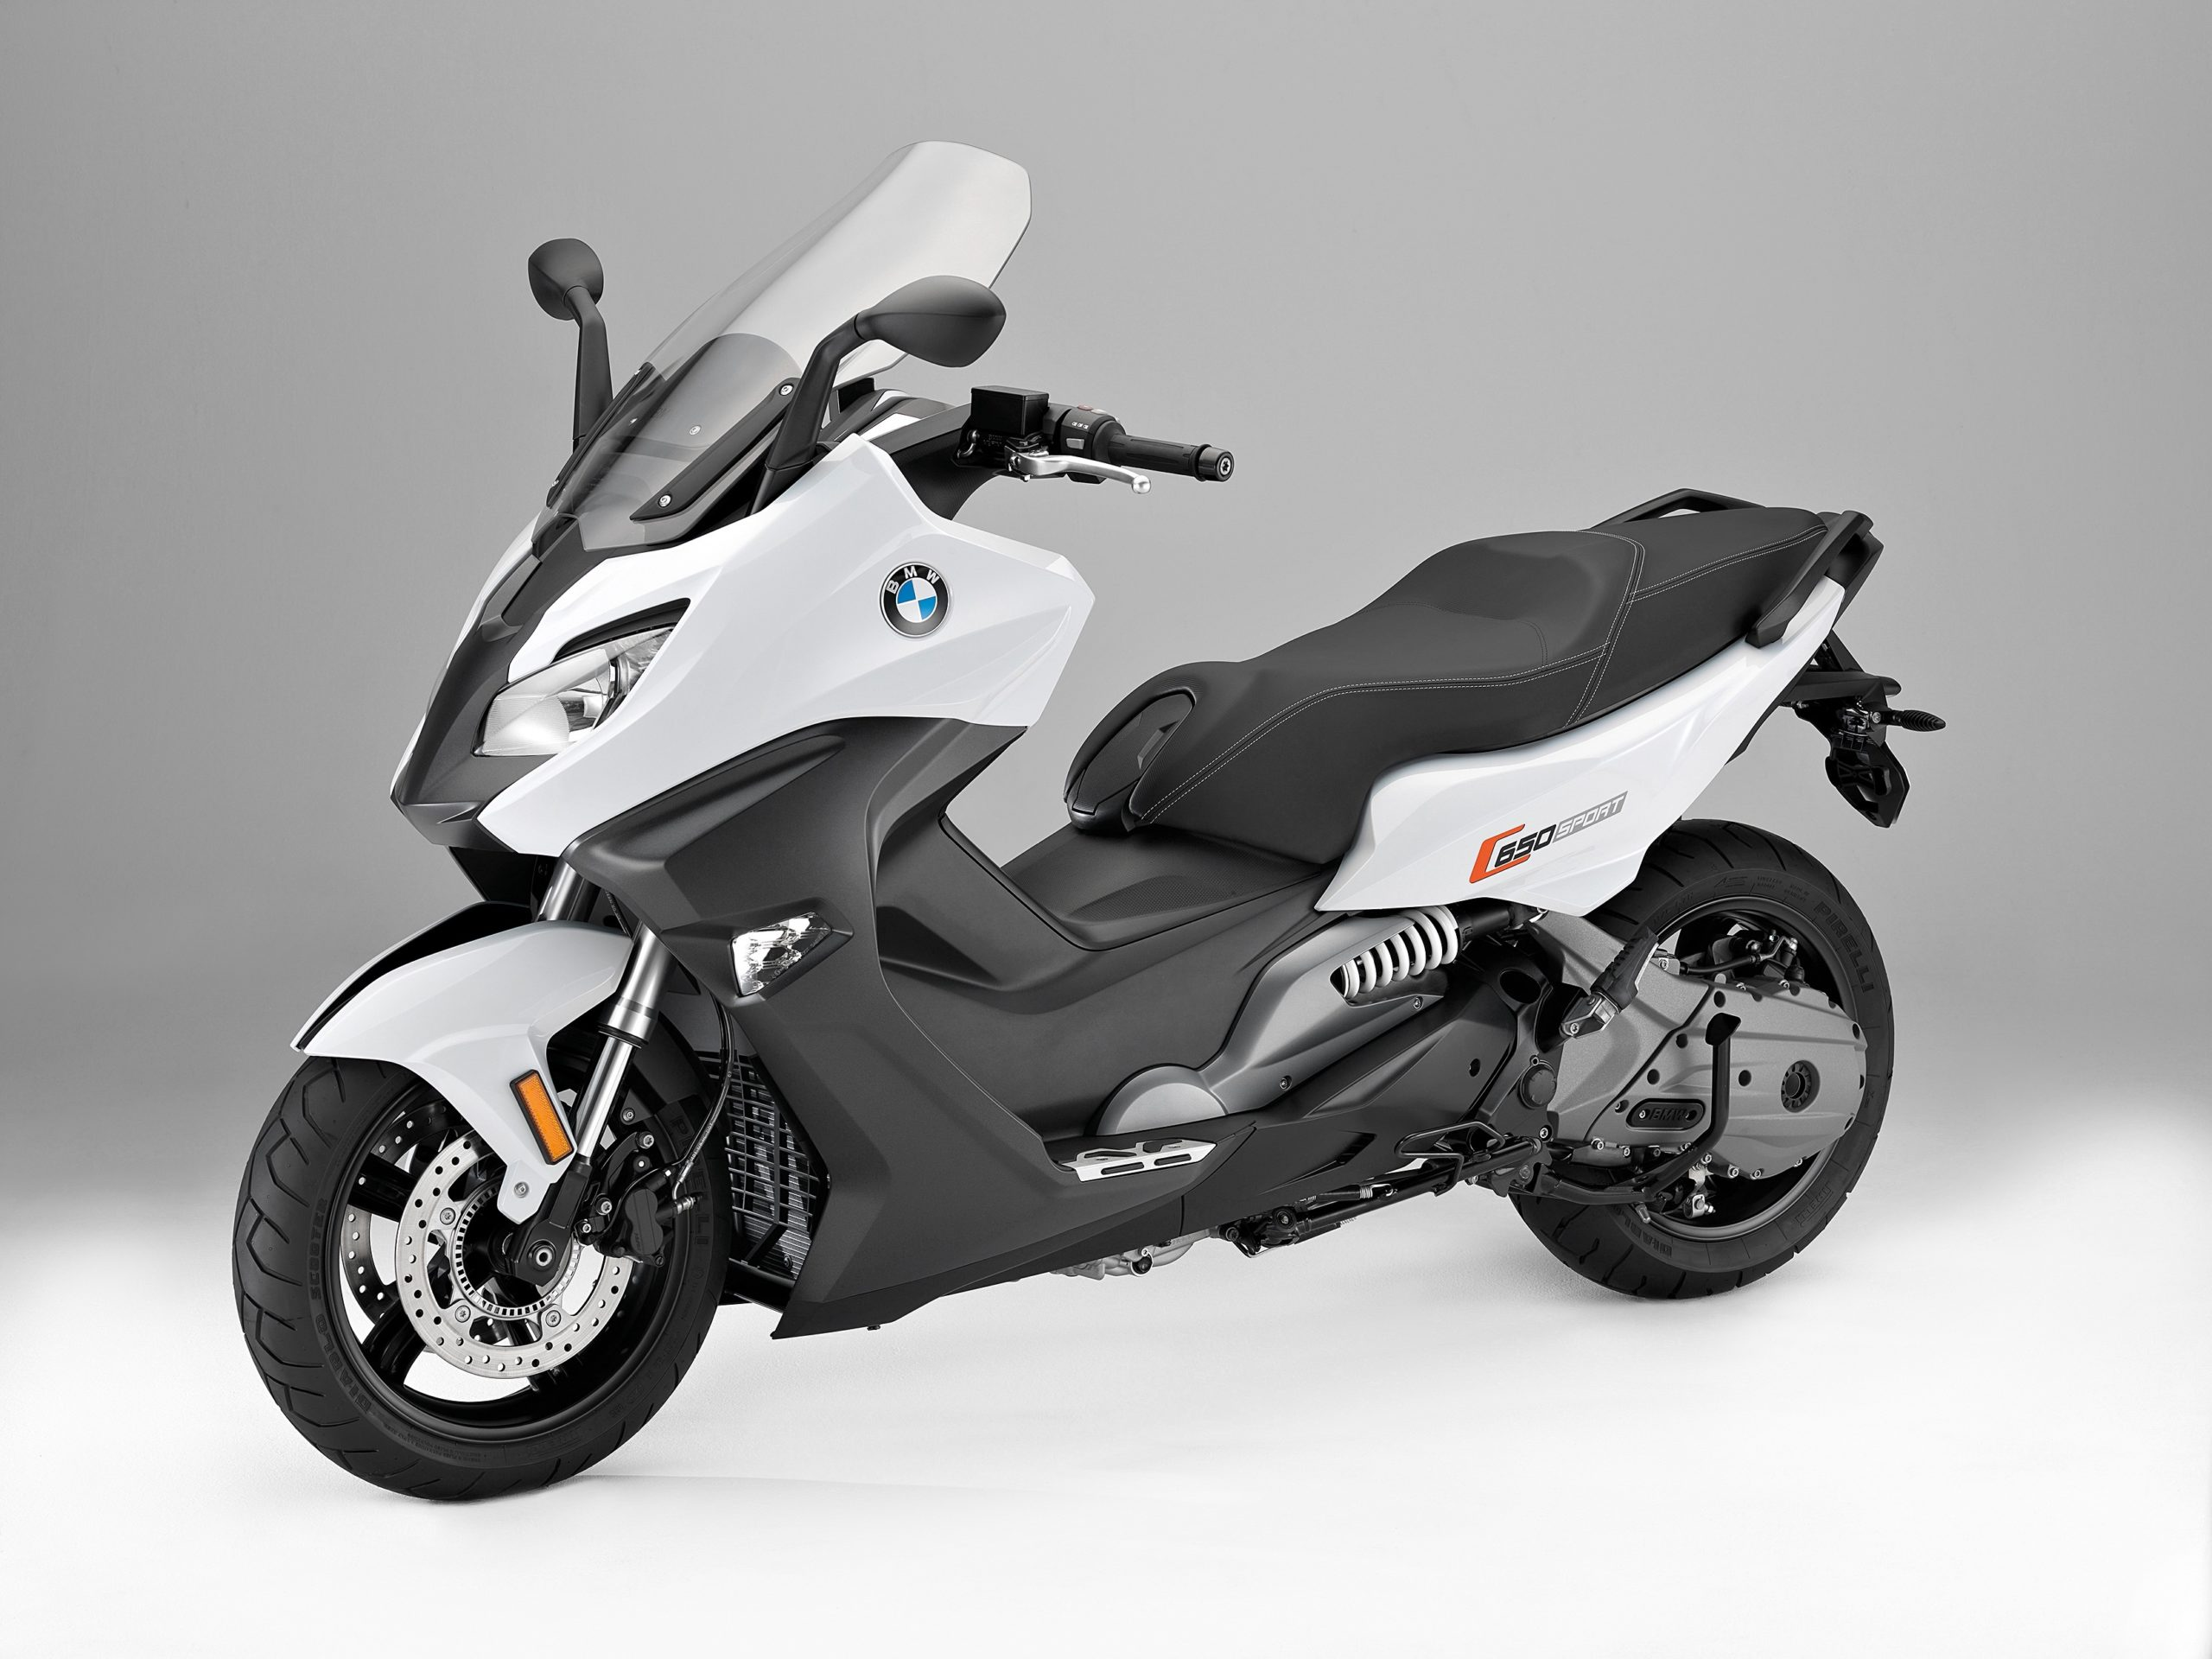 bmw c650 sport del 2016. Black Bedroom Furniture Sets. Home Design Ideas